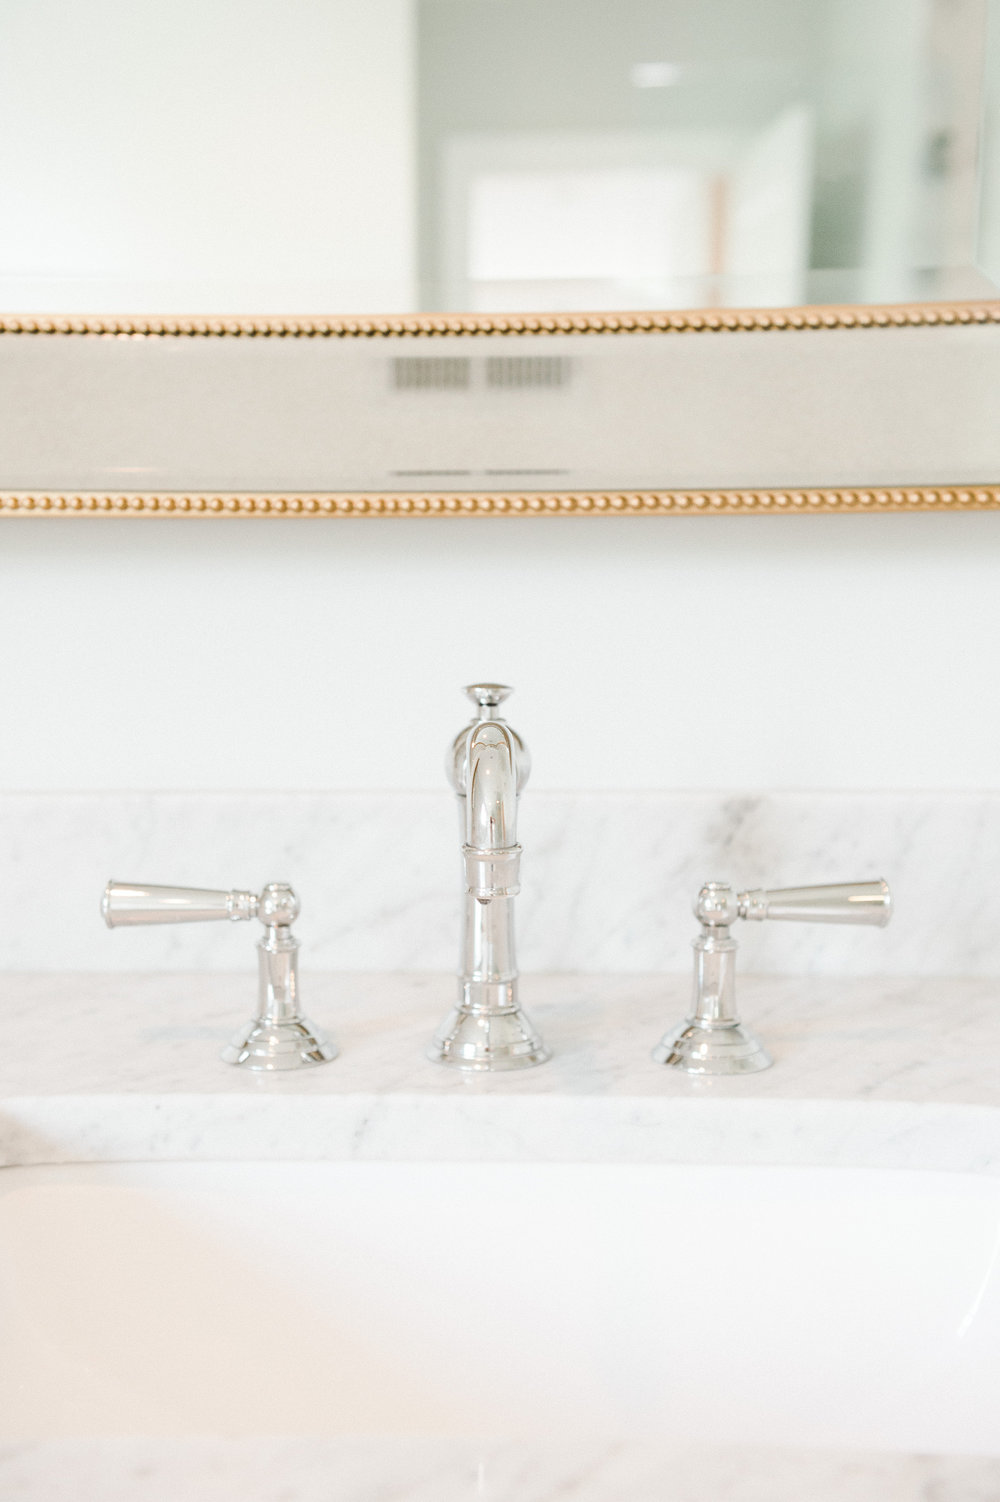 Gold mirror, marble counters, classic faucet || Studio McGee